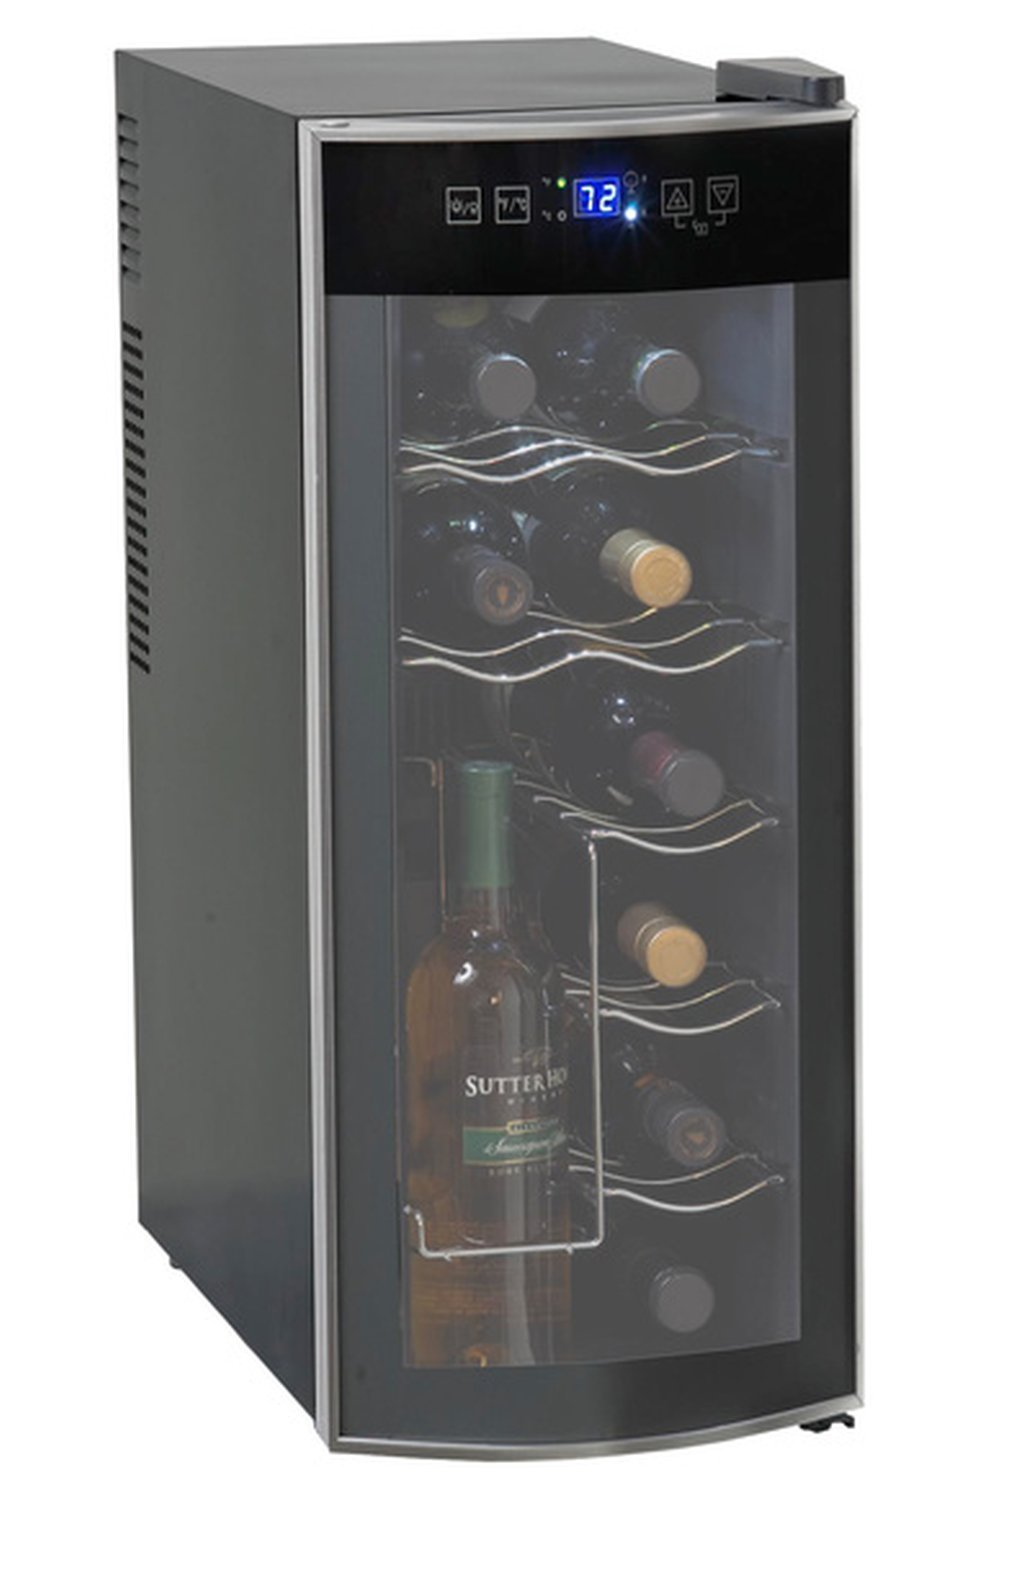 Galleon - 12-Bottle Wine Cooler, Soft-Touch Digital Display